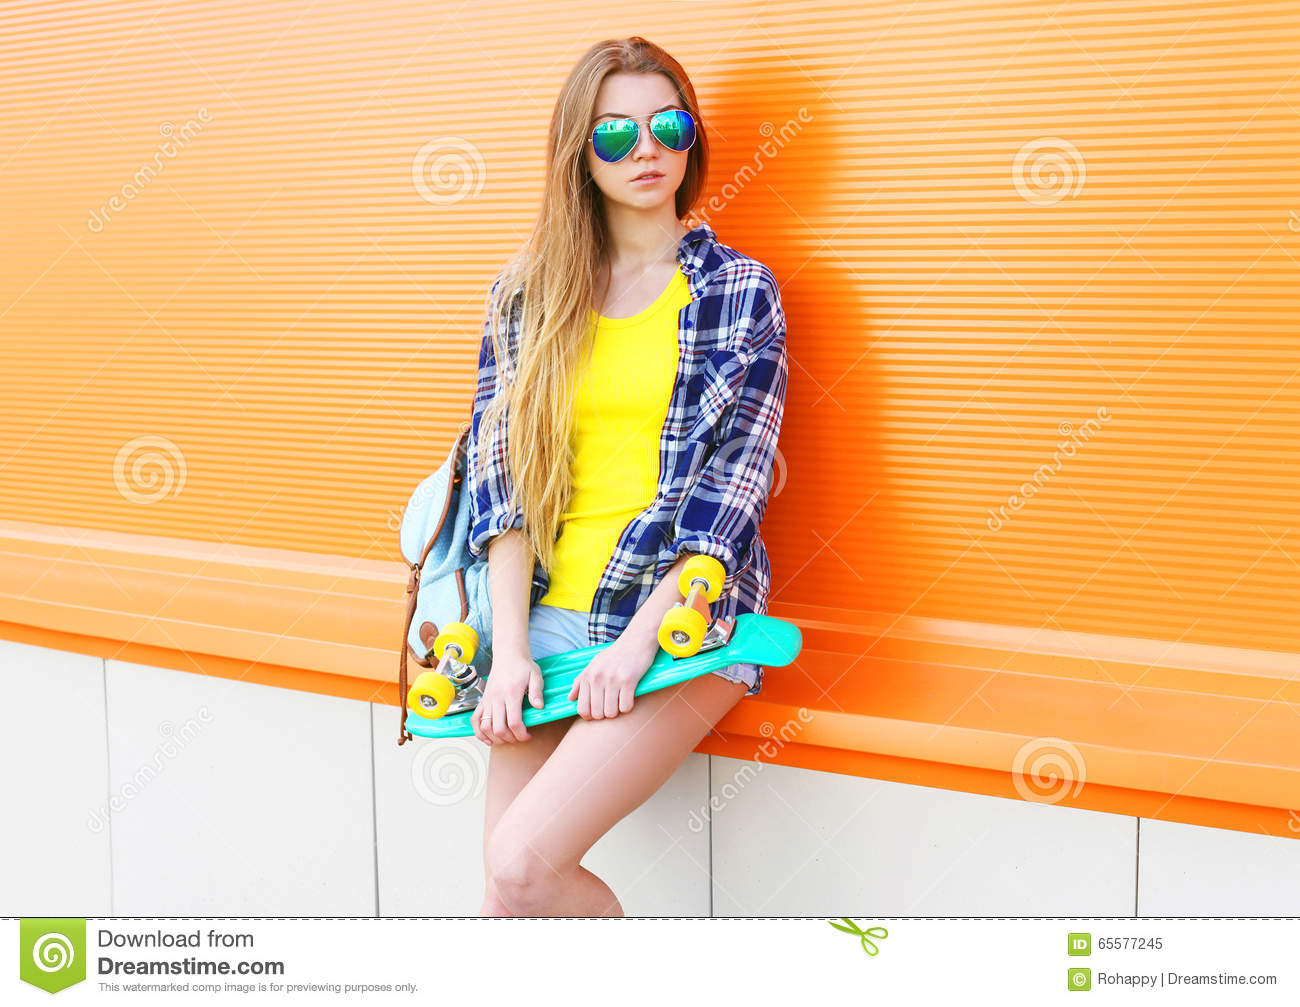 Fashion pretty cool girl wearing a sunglasses with skateboard over colorful